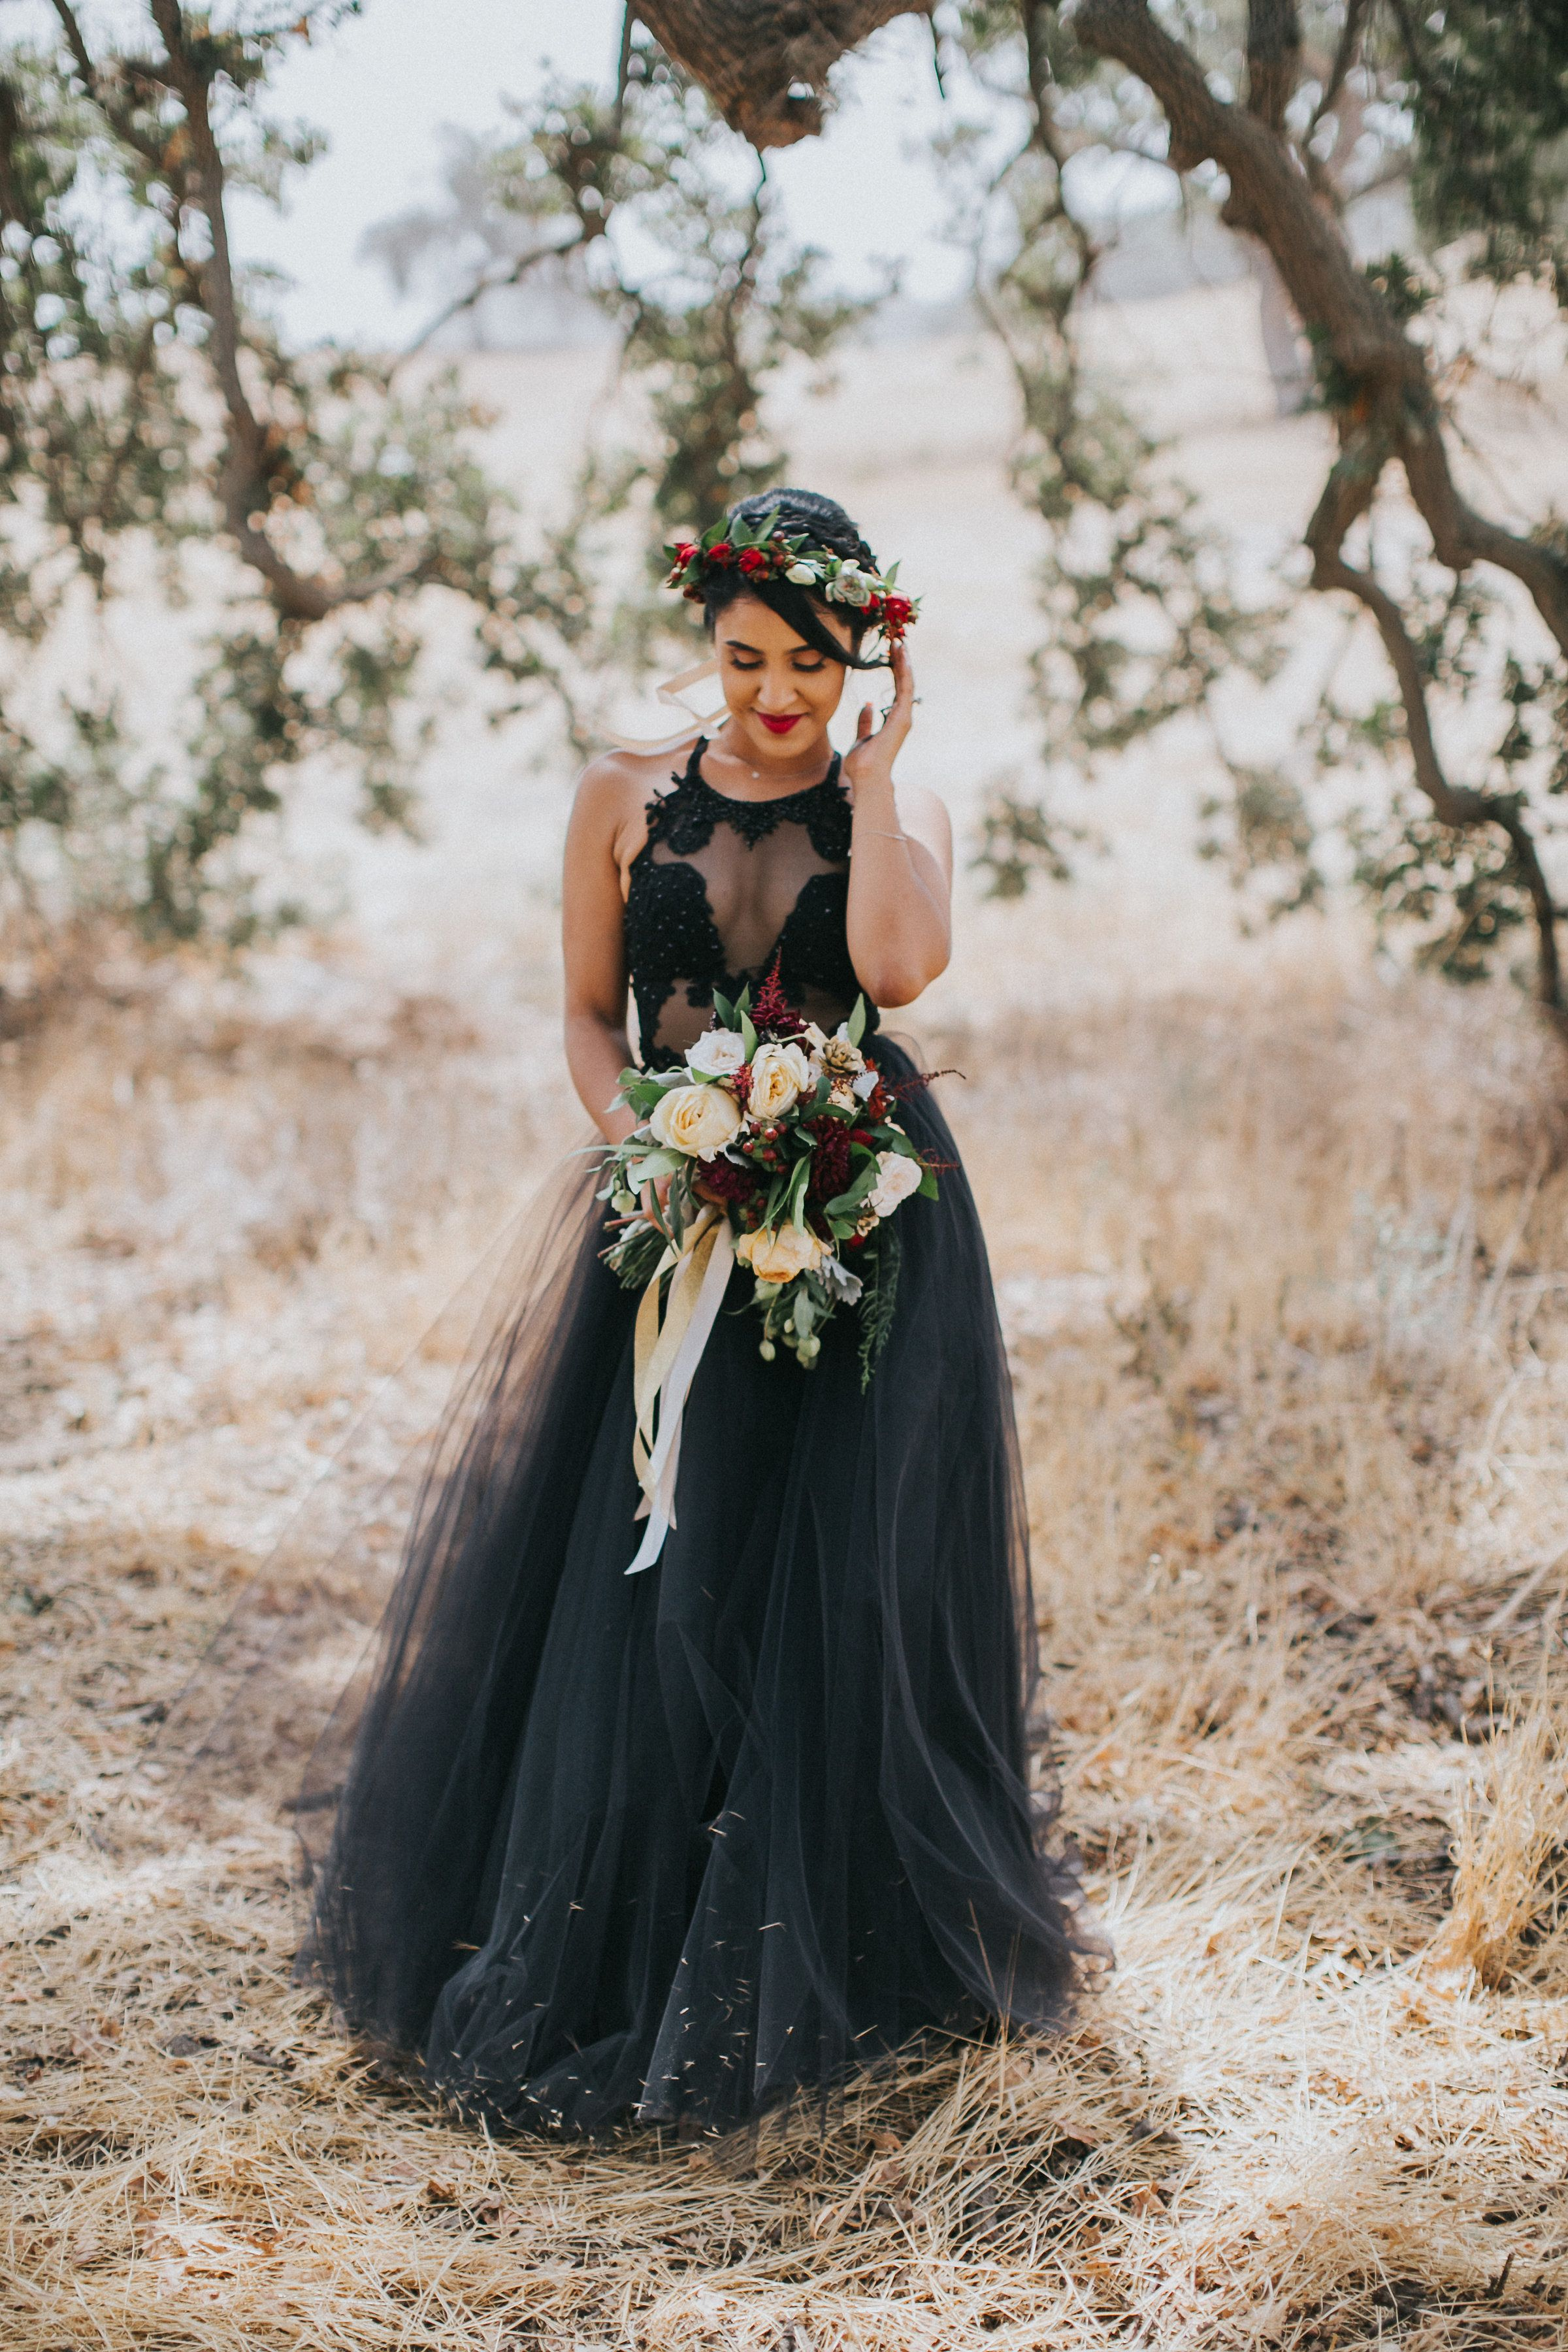 Wearing a black dress to your wedding